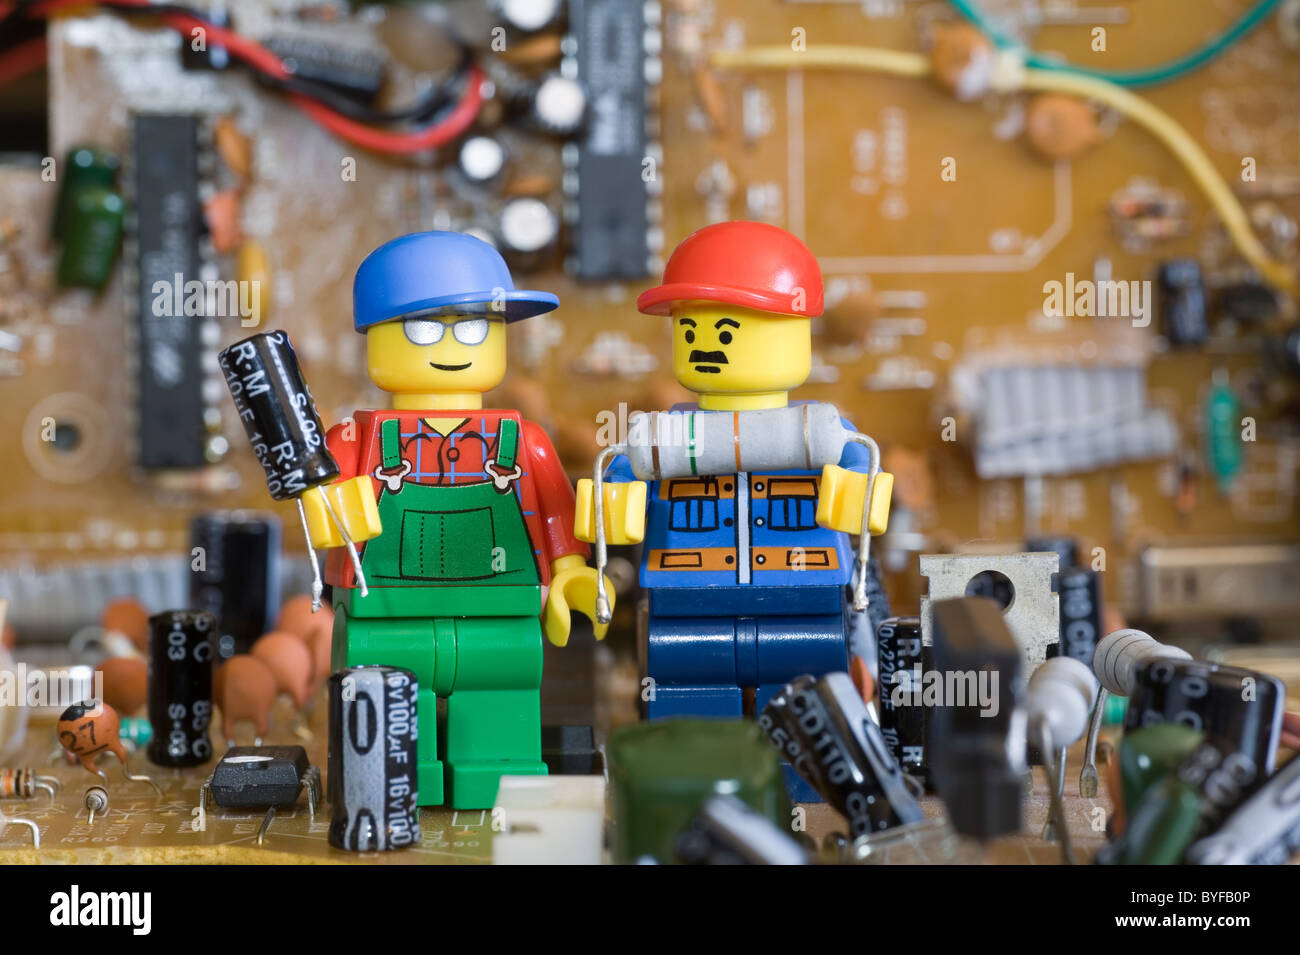 lego engineers in electronic circuit land holding components stock